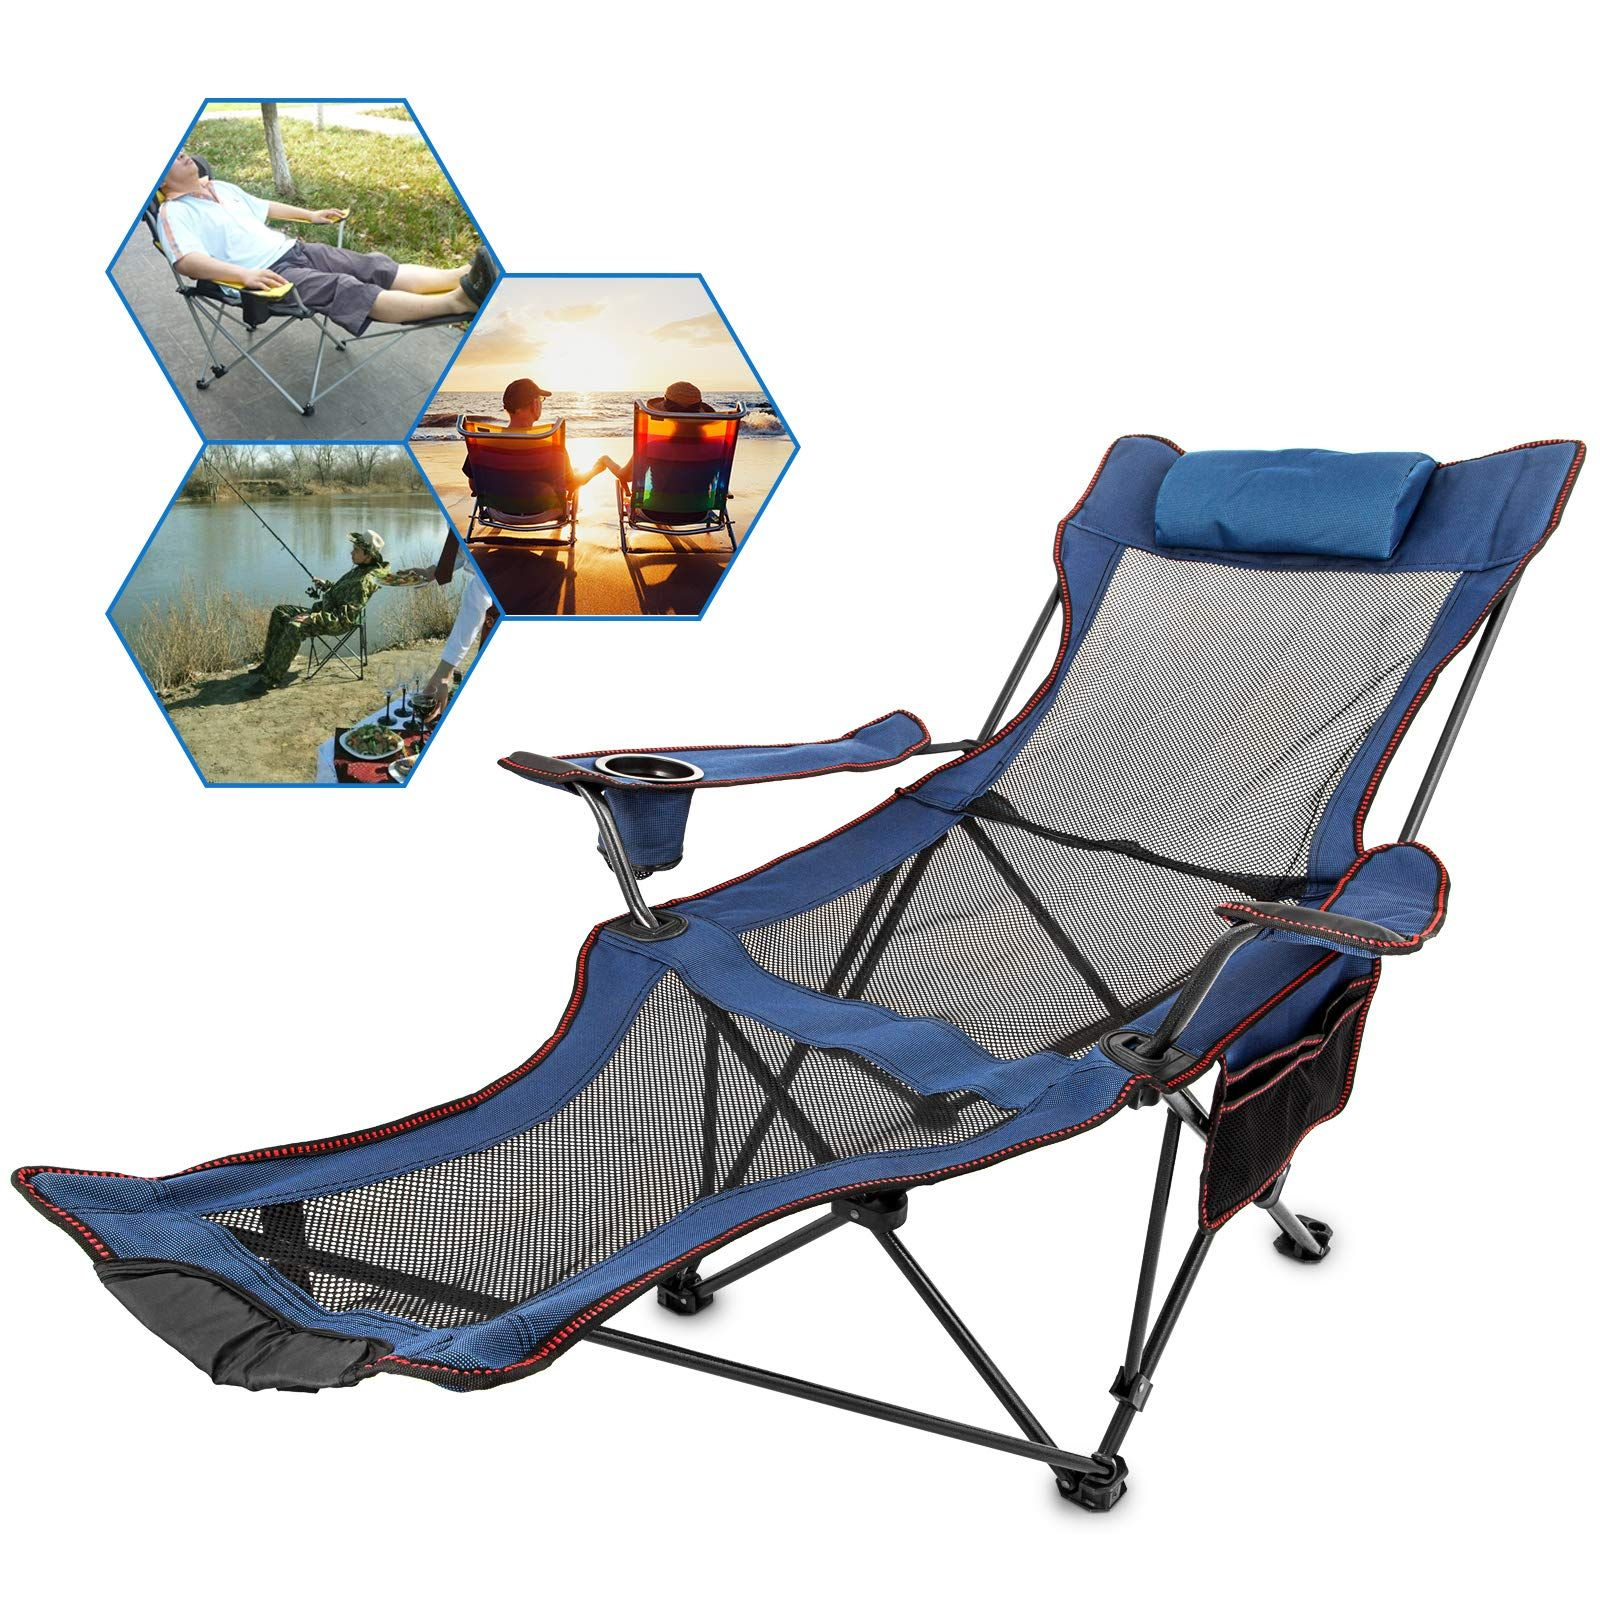 Happybuy Blue Folding Camp Chair With Footrest Mesh Lounge Chair With Cup Holder And Storage Bag Folding Camping Chairs Camping Chairs Reclining Outdoor Chair